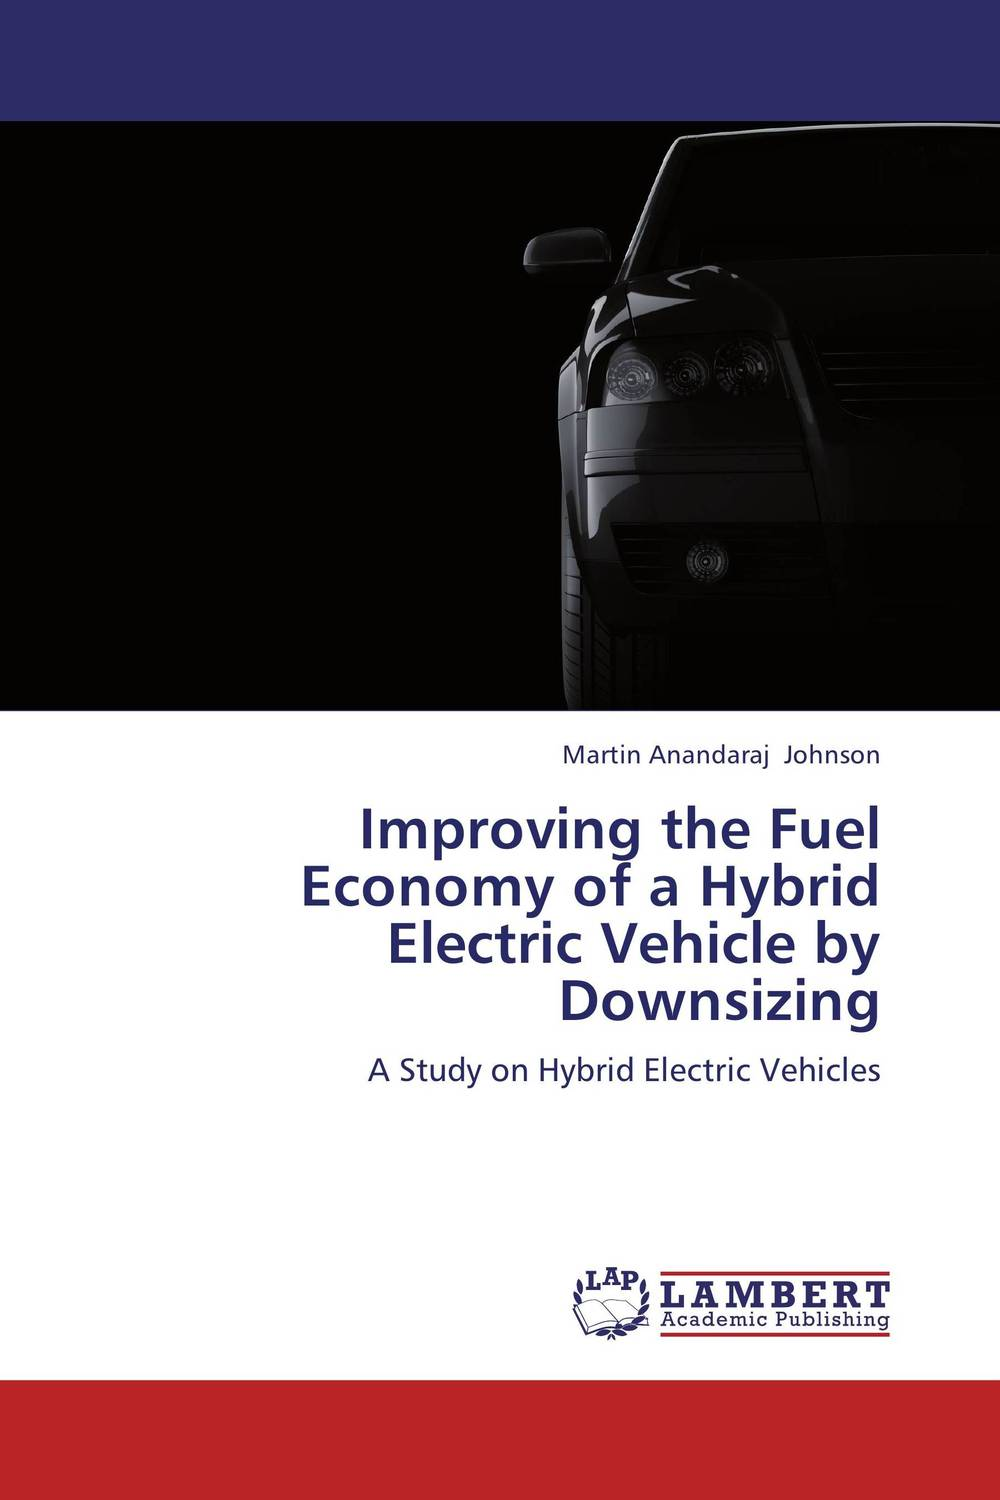 Improving the Fuel Economy of a Hybrid Electric Vehicle by Downsizing biswajit barik design and analysis of plug in hybrid electric vehicles